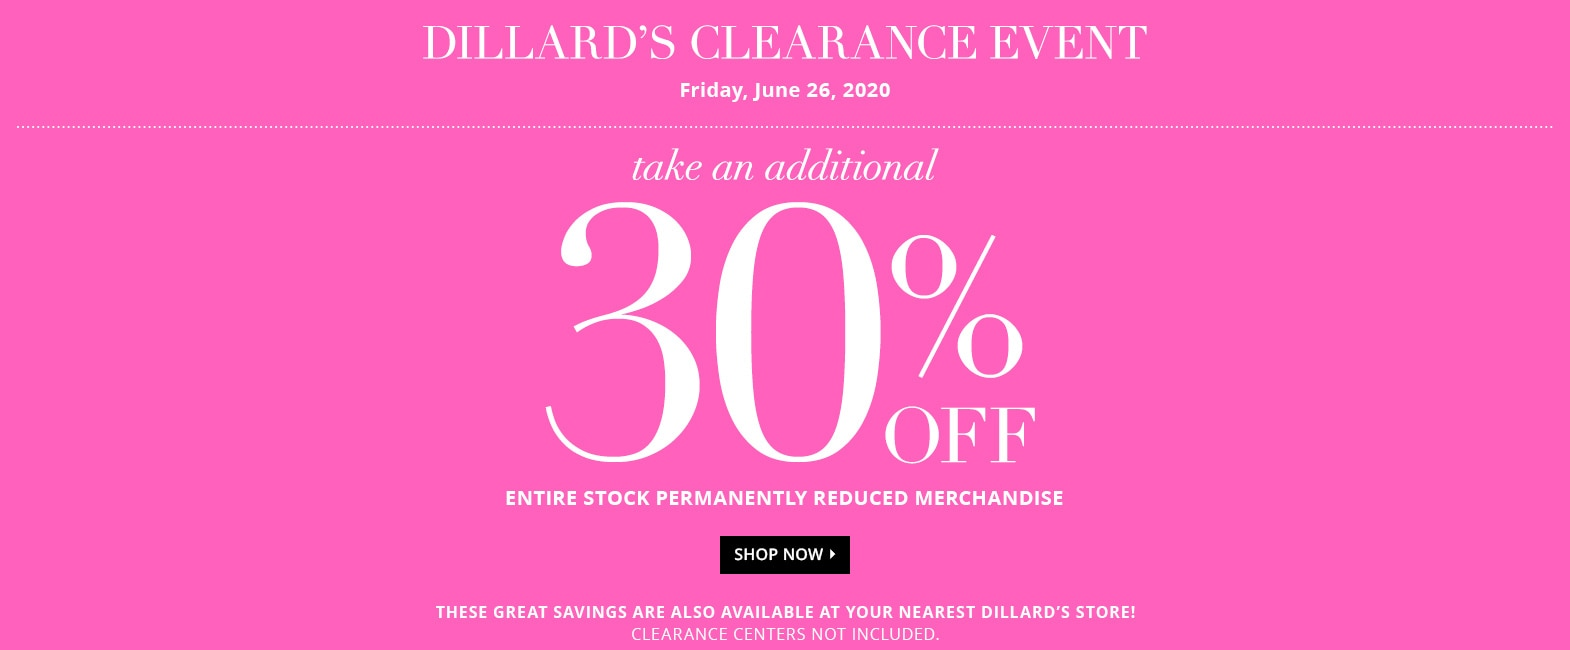 95bcdc0100a Dillard s - Official Site of Dillard s Department Stores - Dillards ...